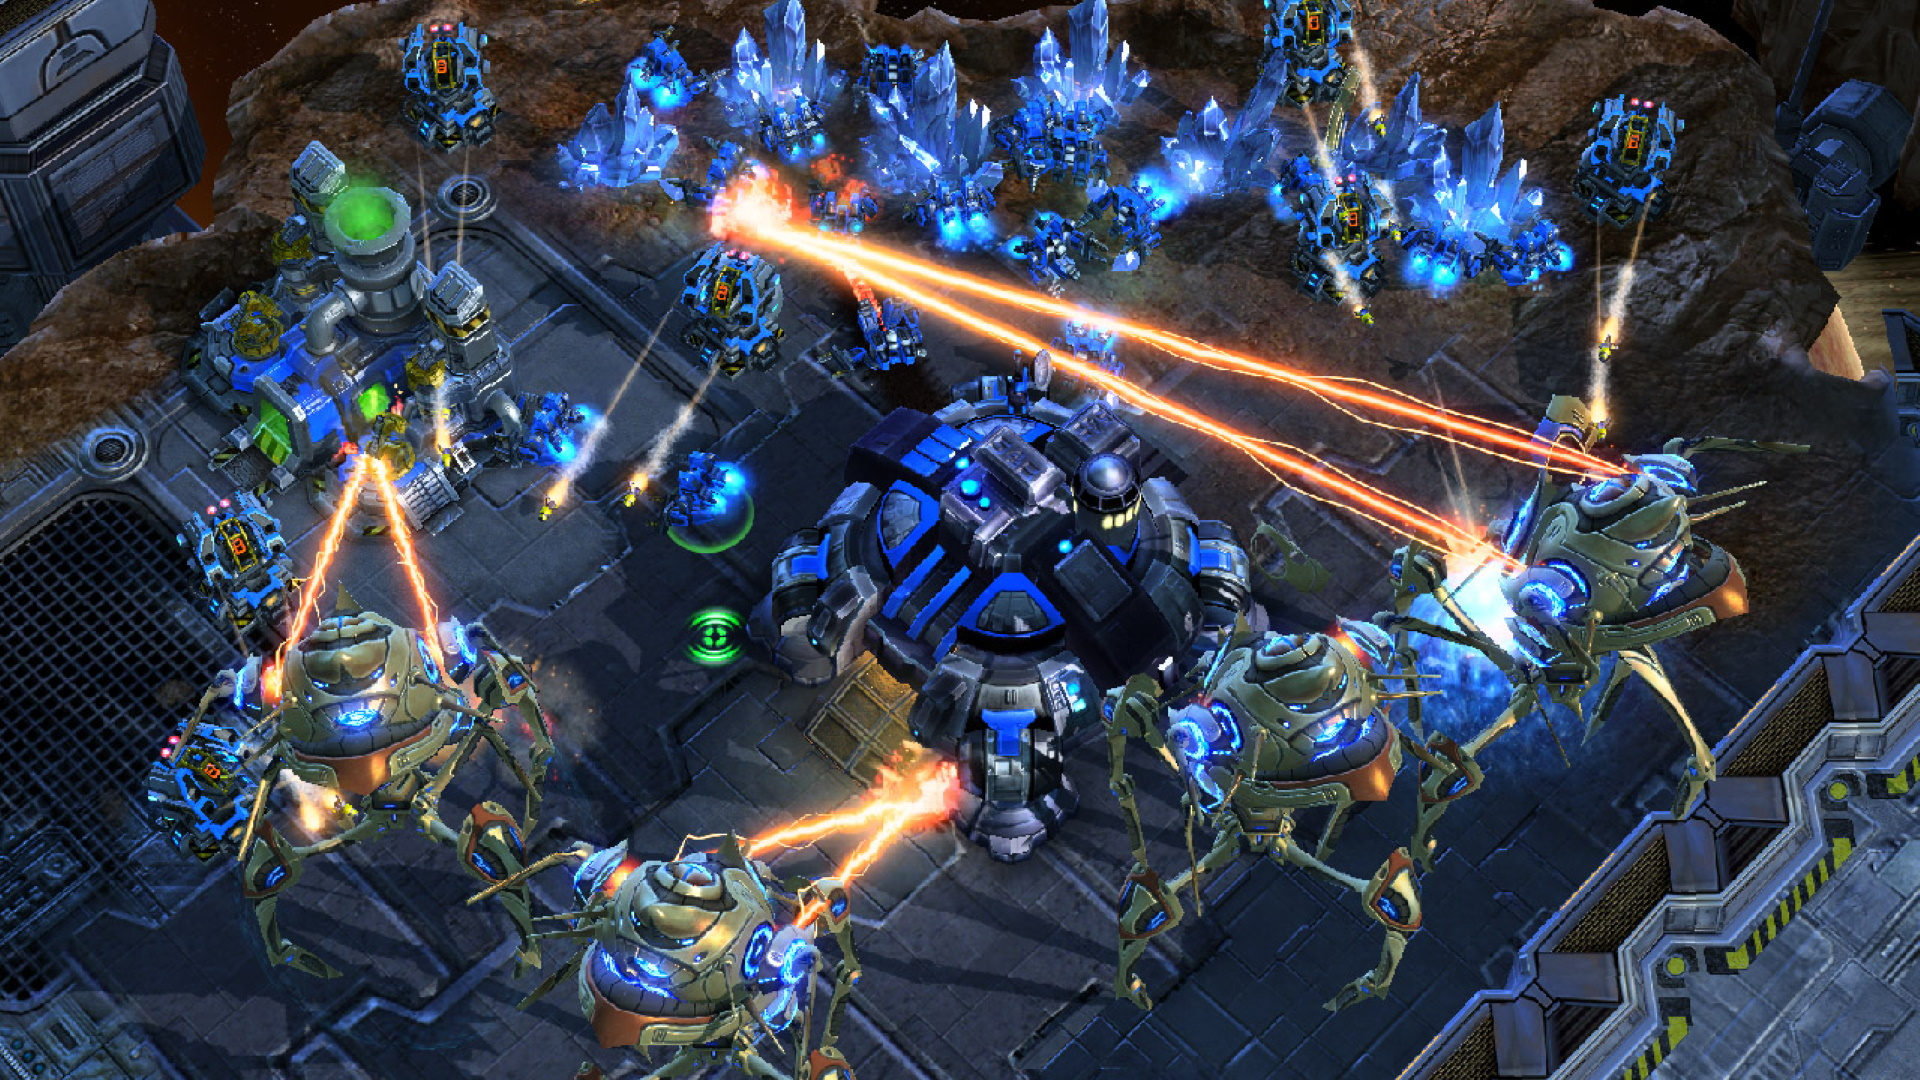 A screenshot of an intense battle encounter in StarCraft II.